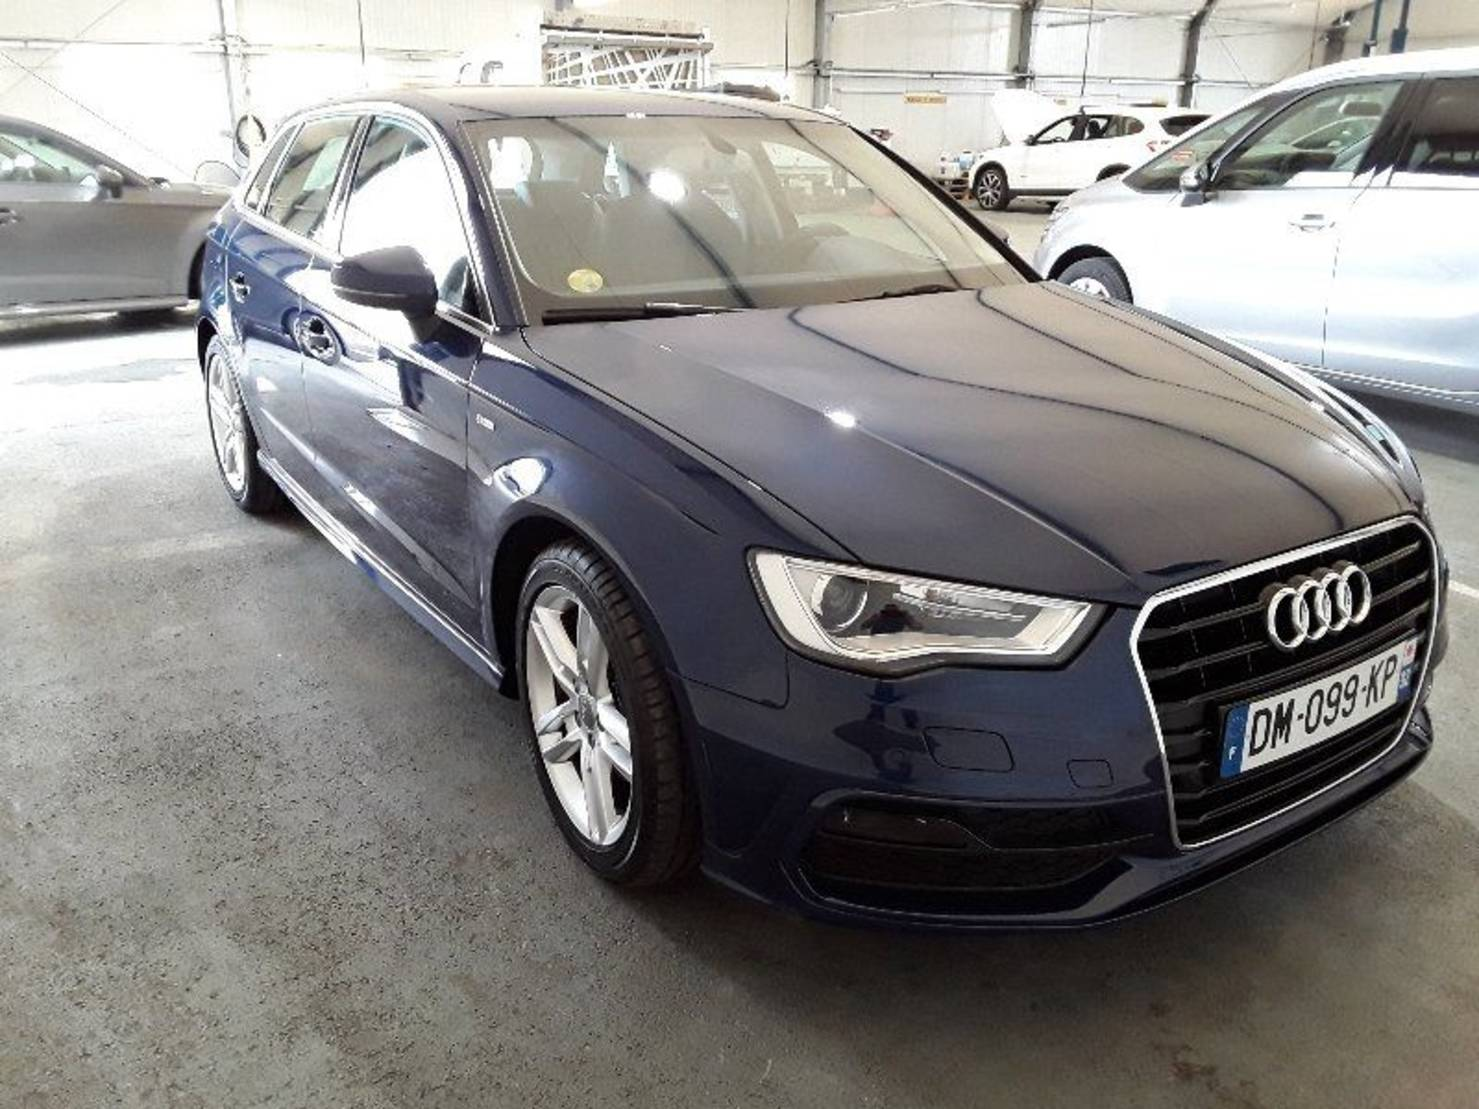 Audi A3 1.6 TDI 110, Ambition Luxe S tronic 7 detail2